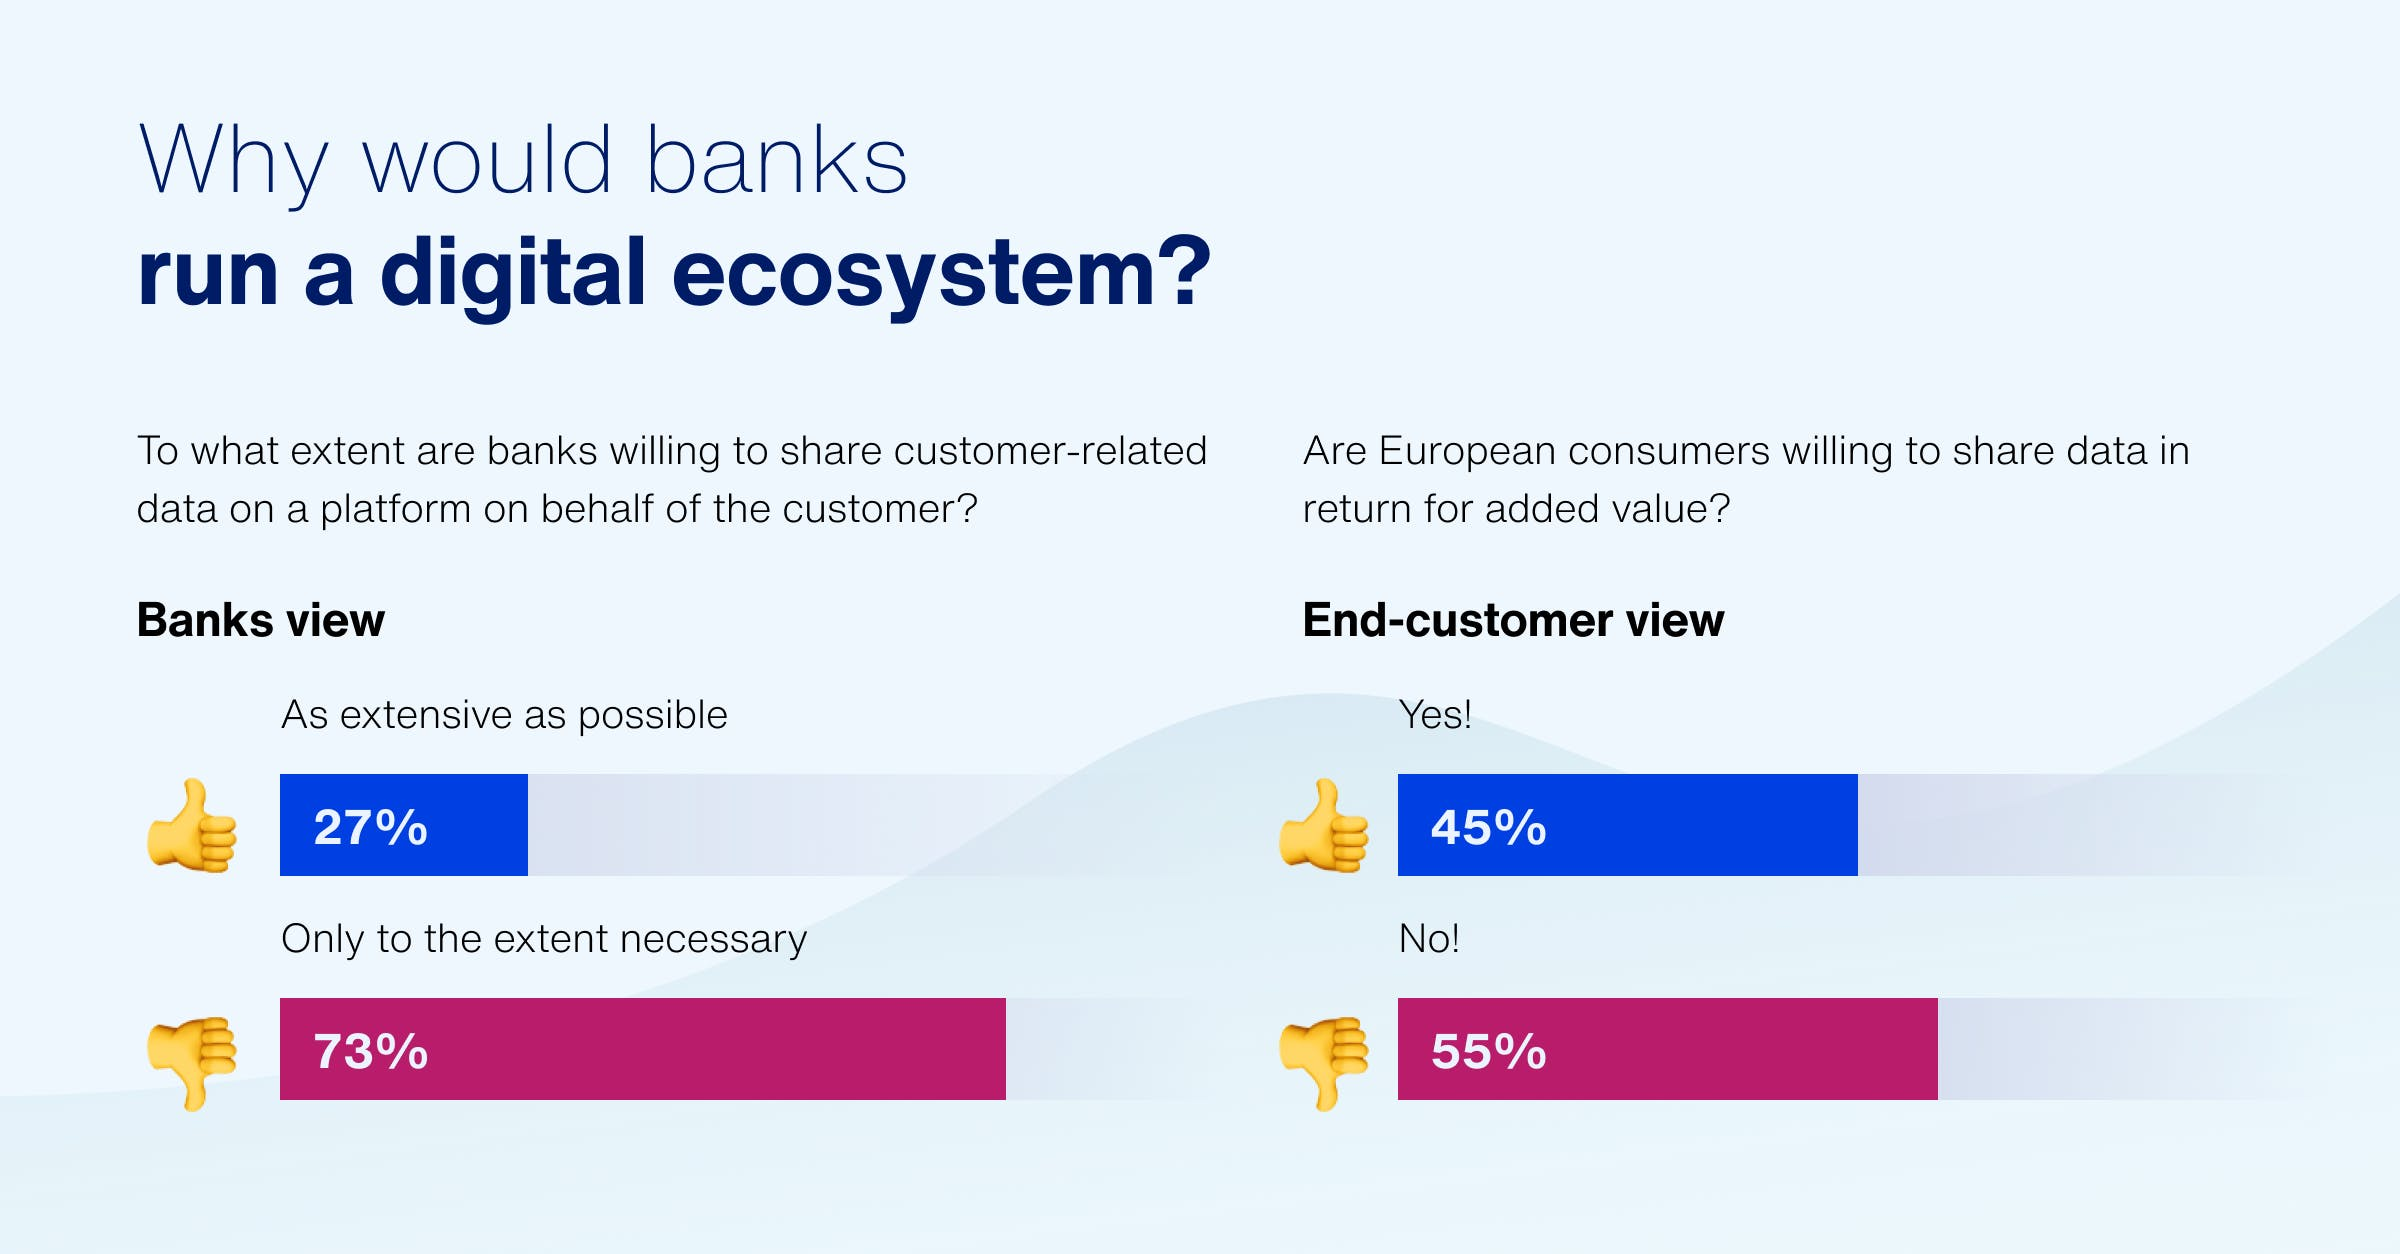 Why would banks run a digital ecosystem?